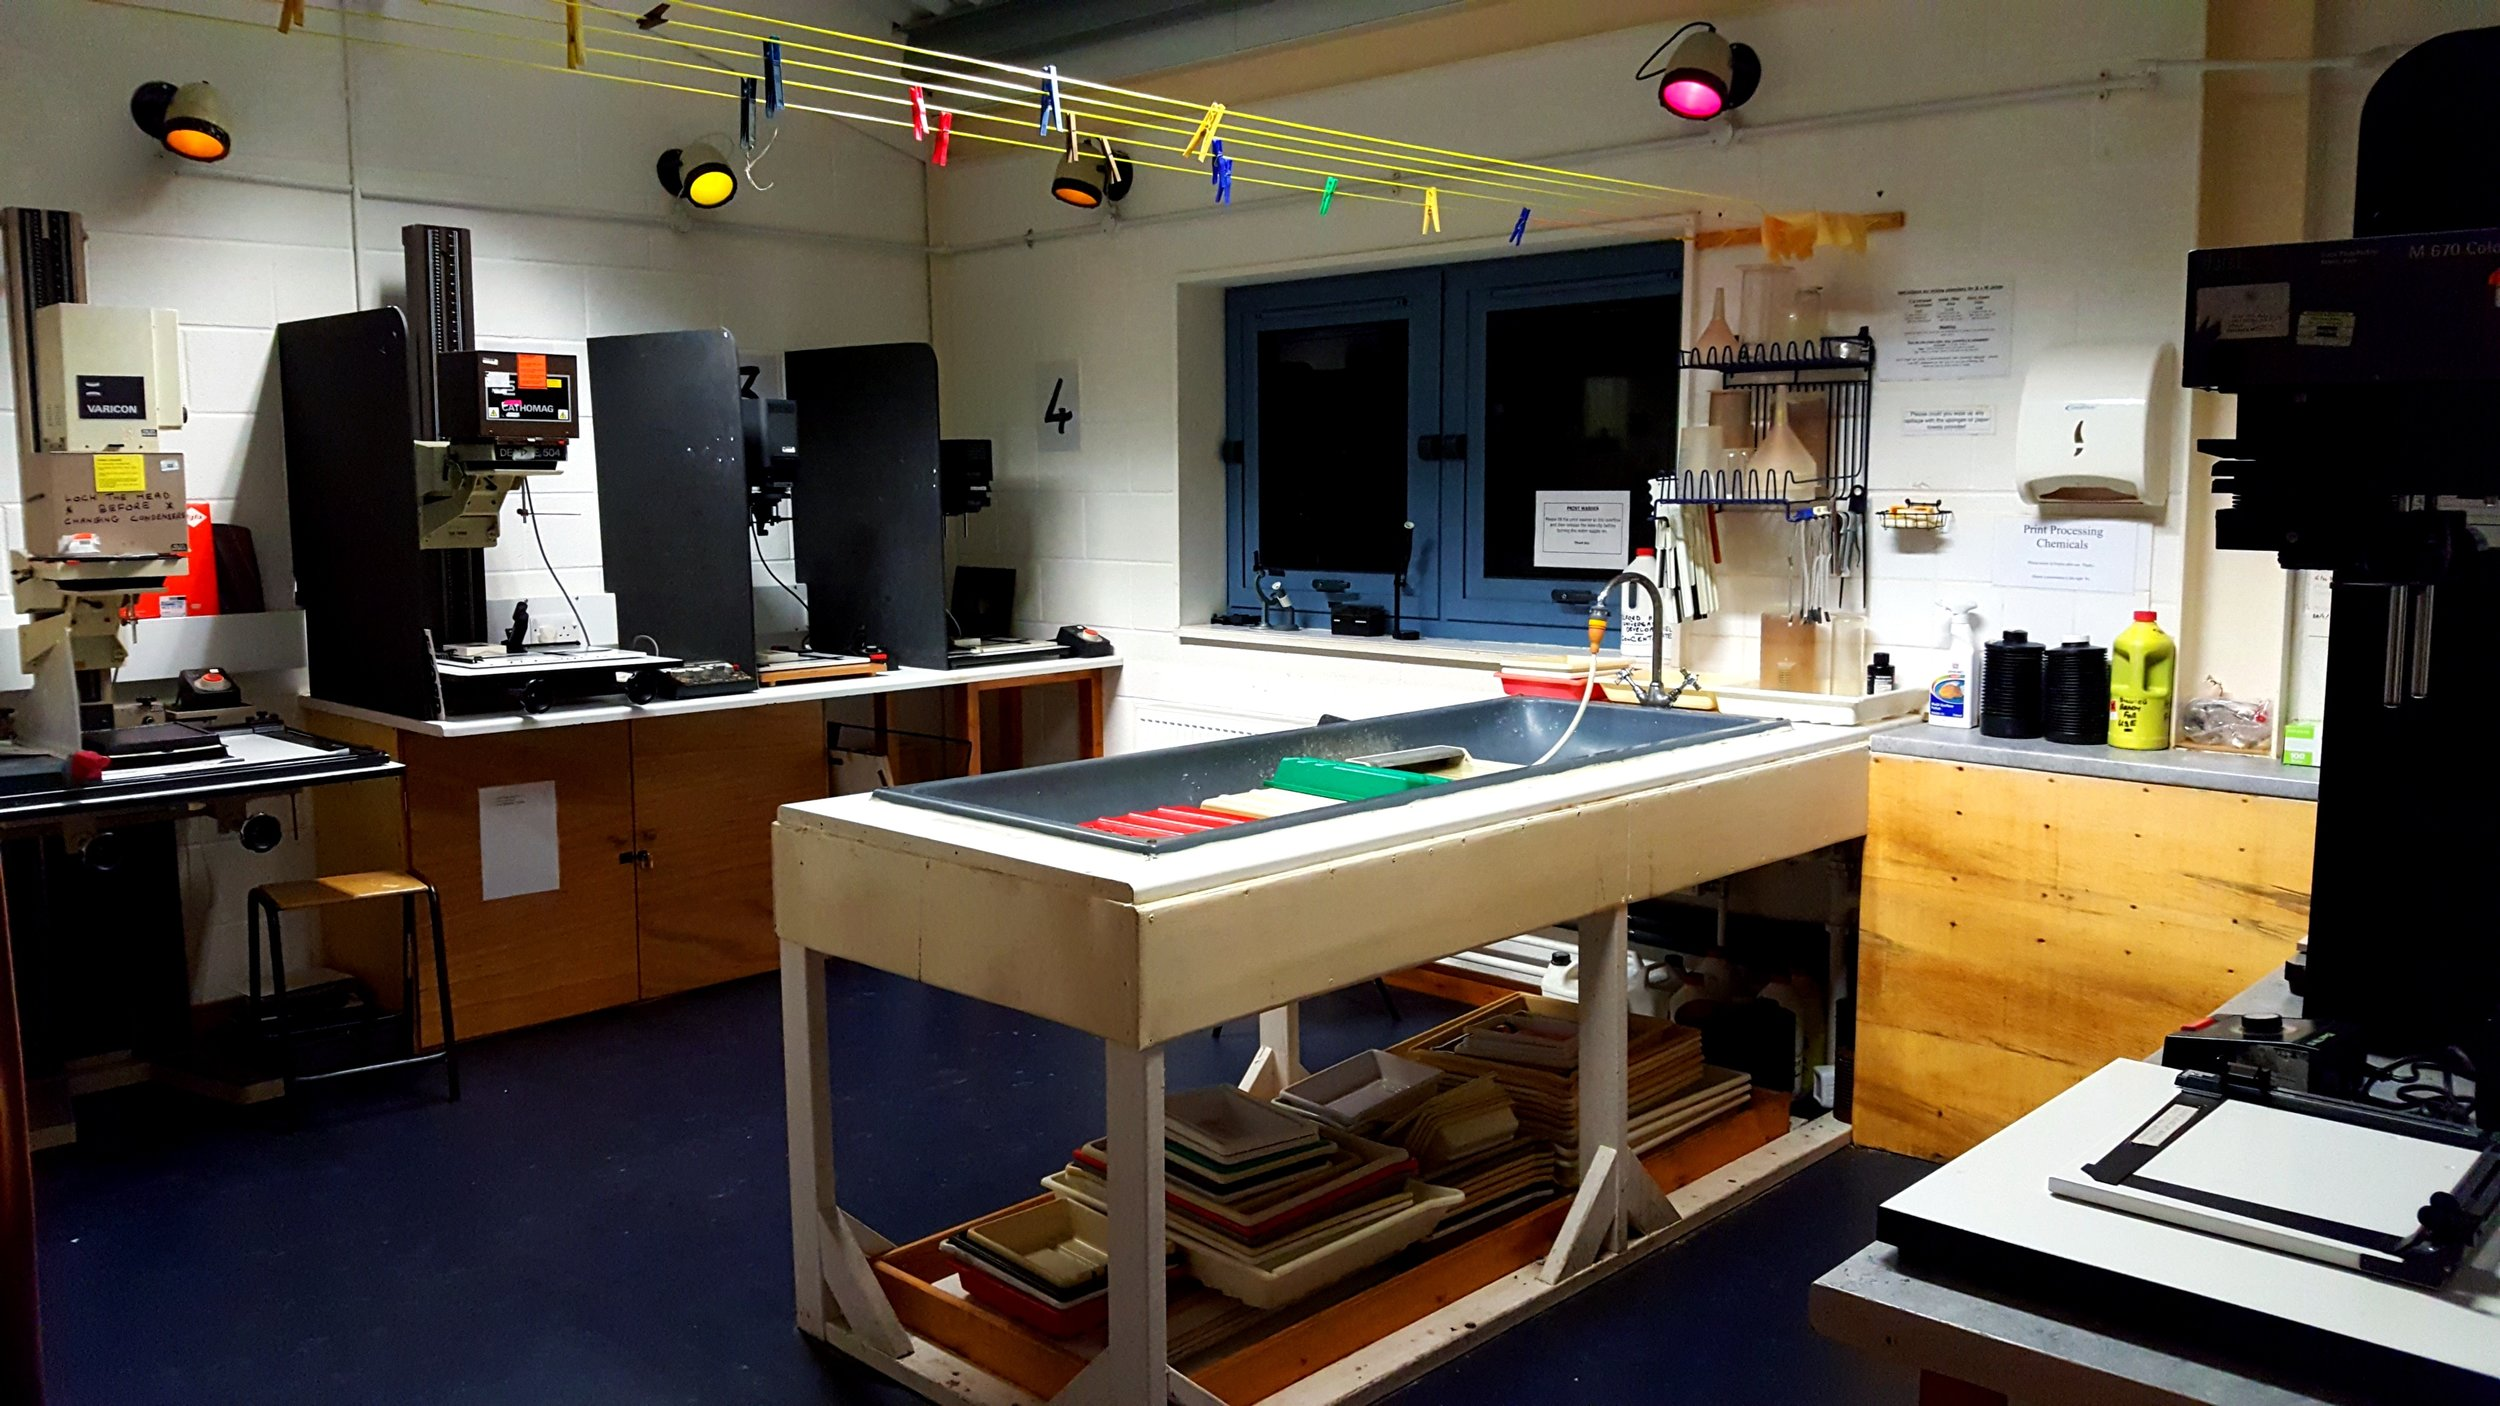 Darkroom facilities are now available for use on a sessional hire basis for individuals or groups in Bristol